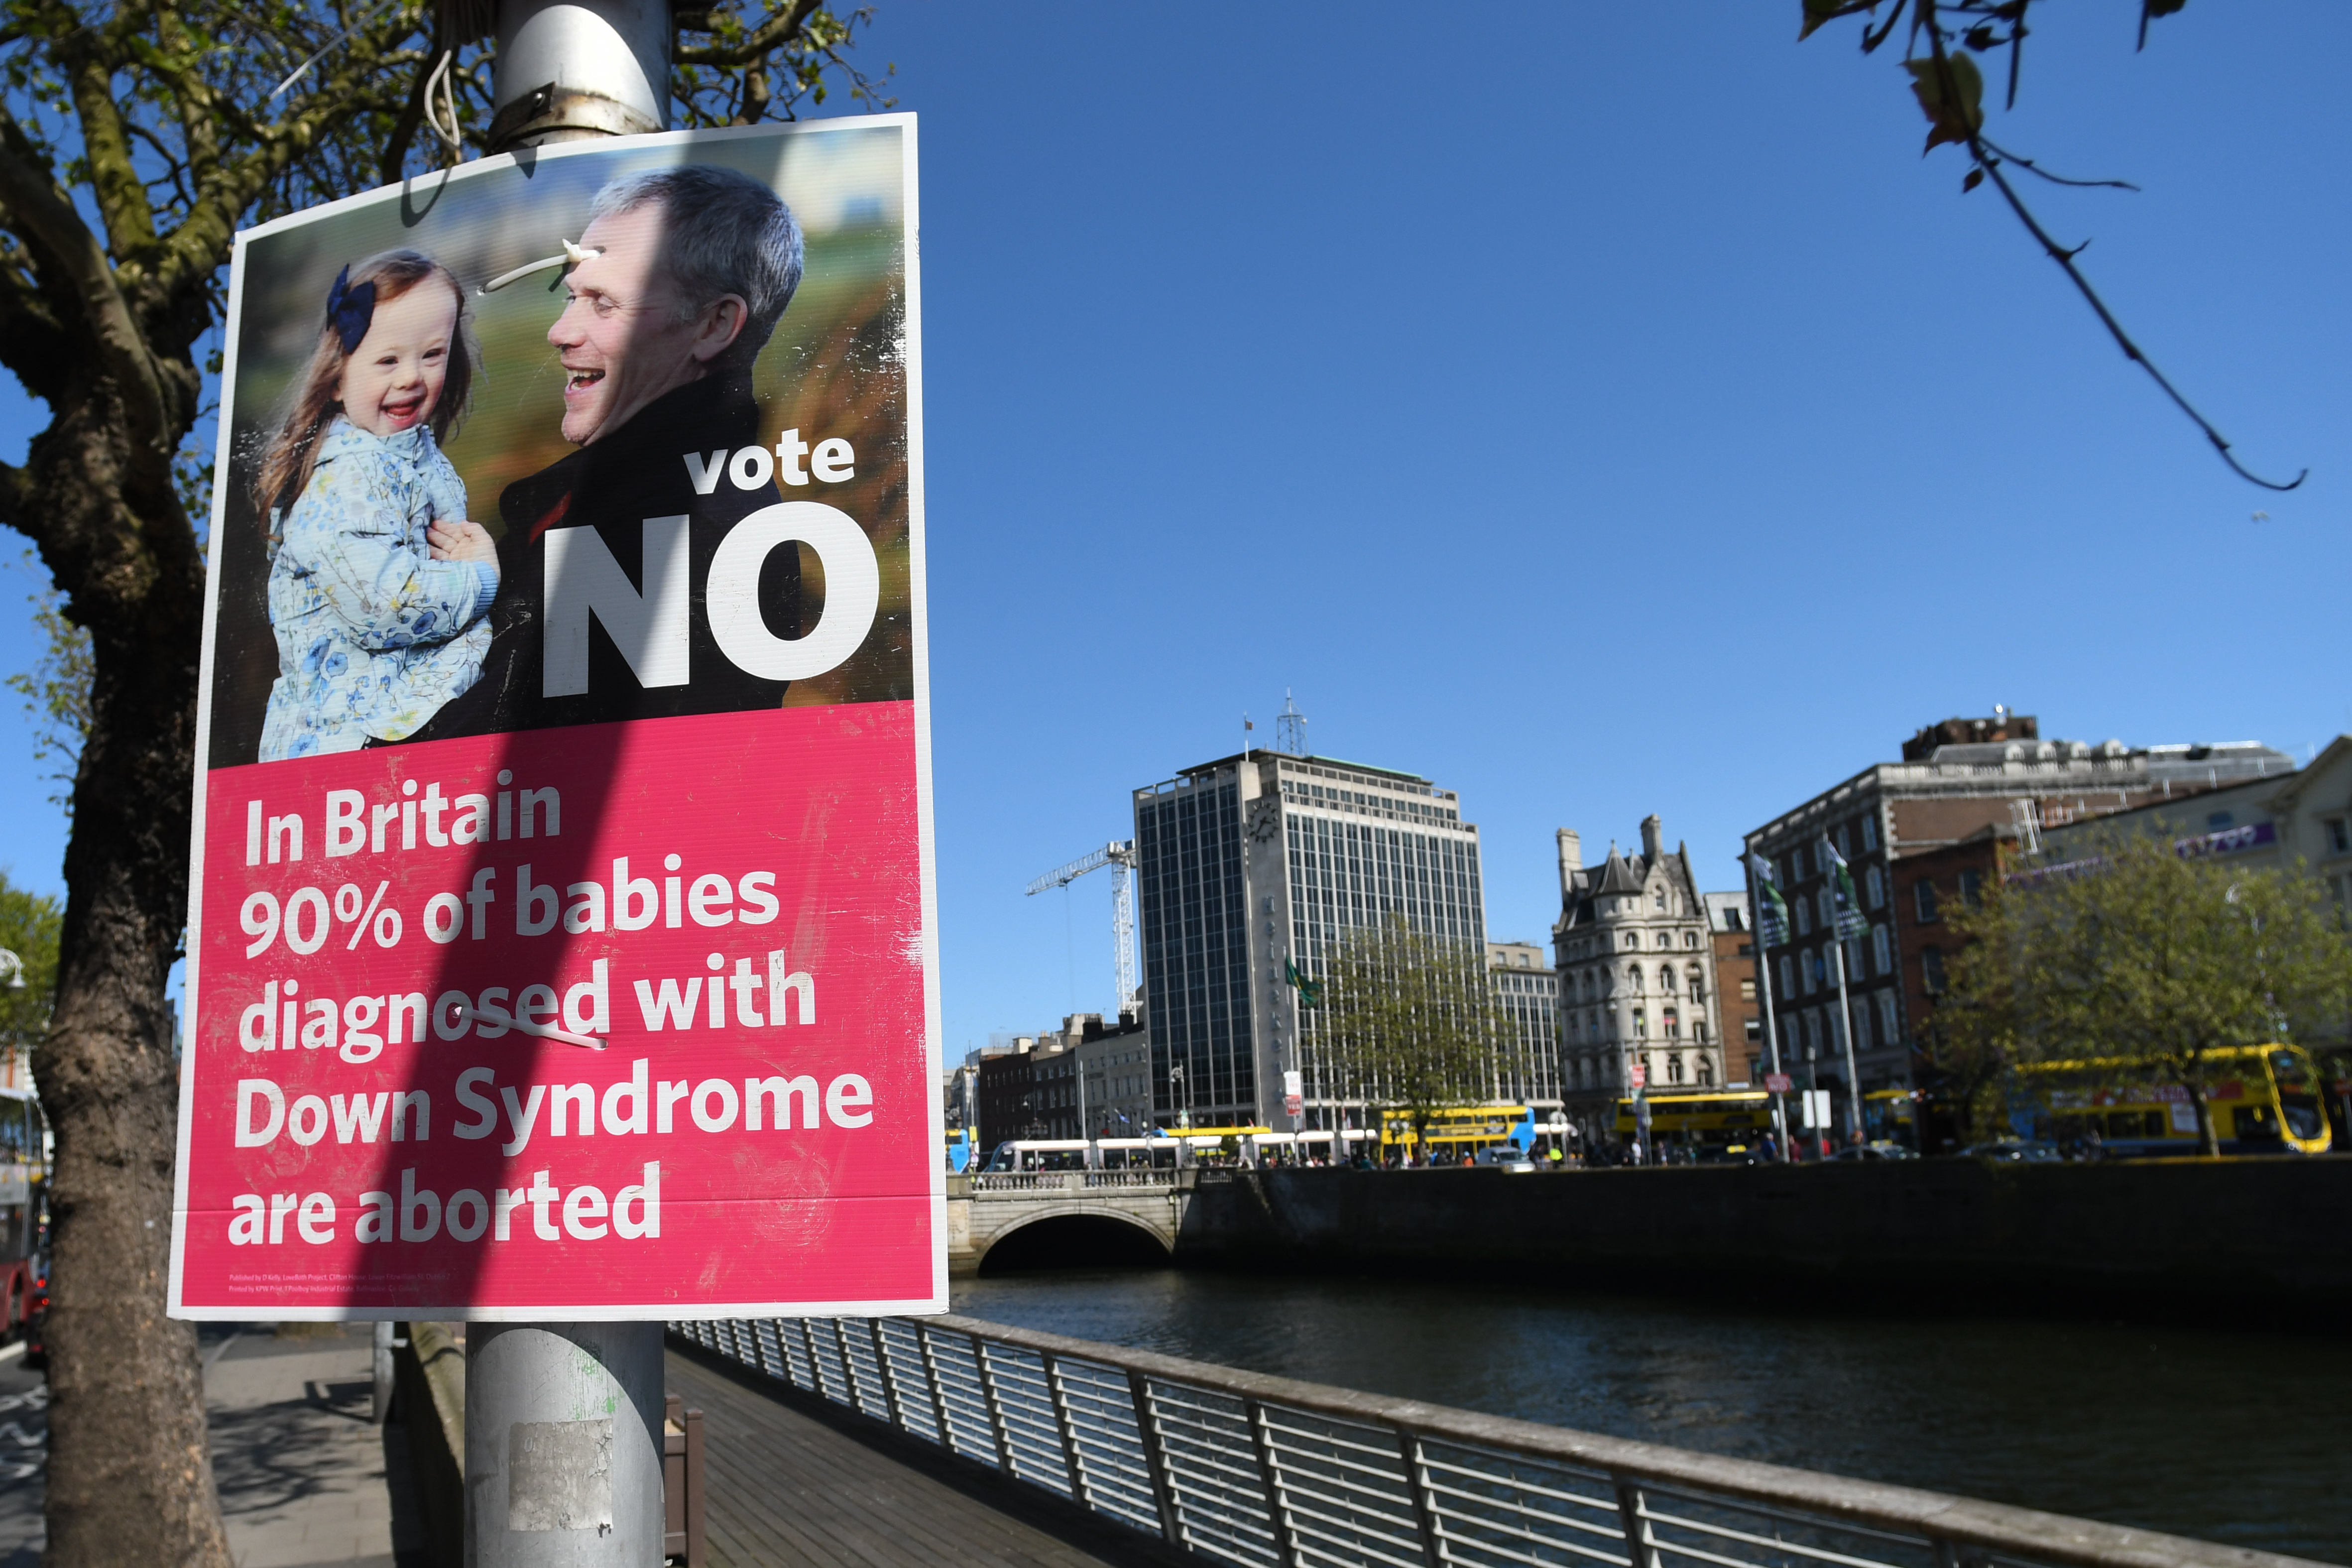 A poster calling for a 'NO' vote in the referendum to retain the eighth amendment of the Irish constitution seen near Liffey river, in Dublin's City Center on May 16, 2018.